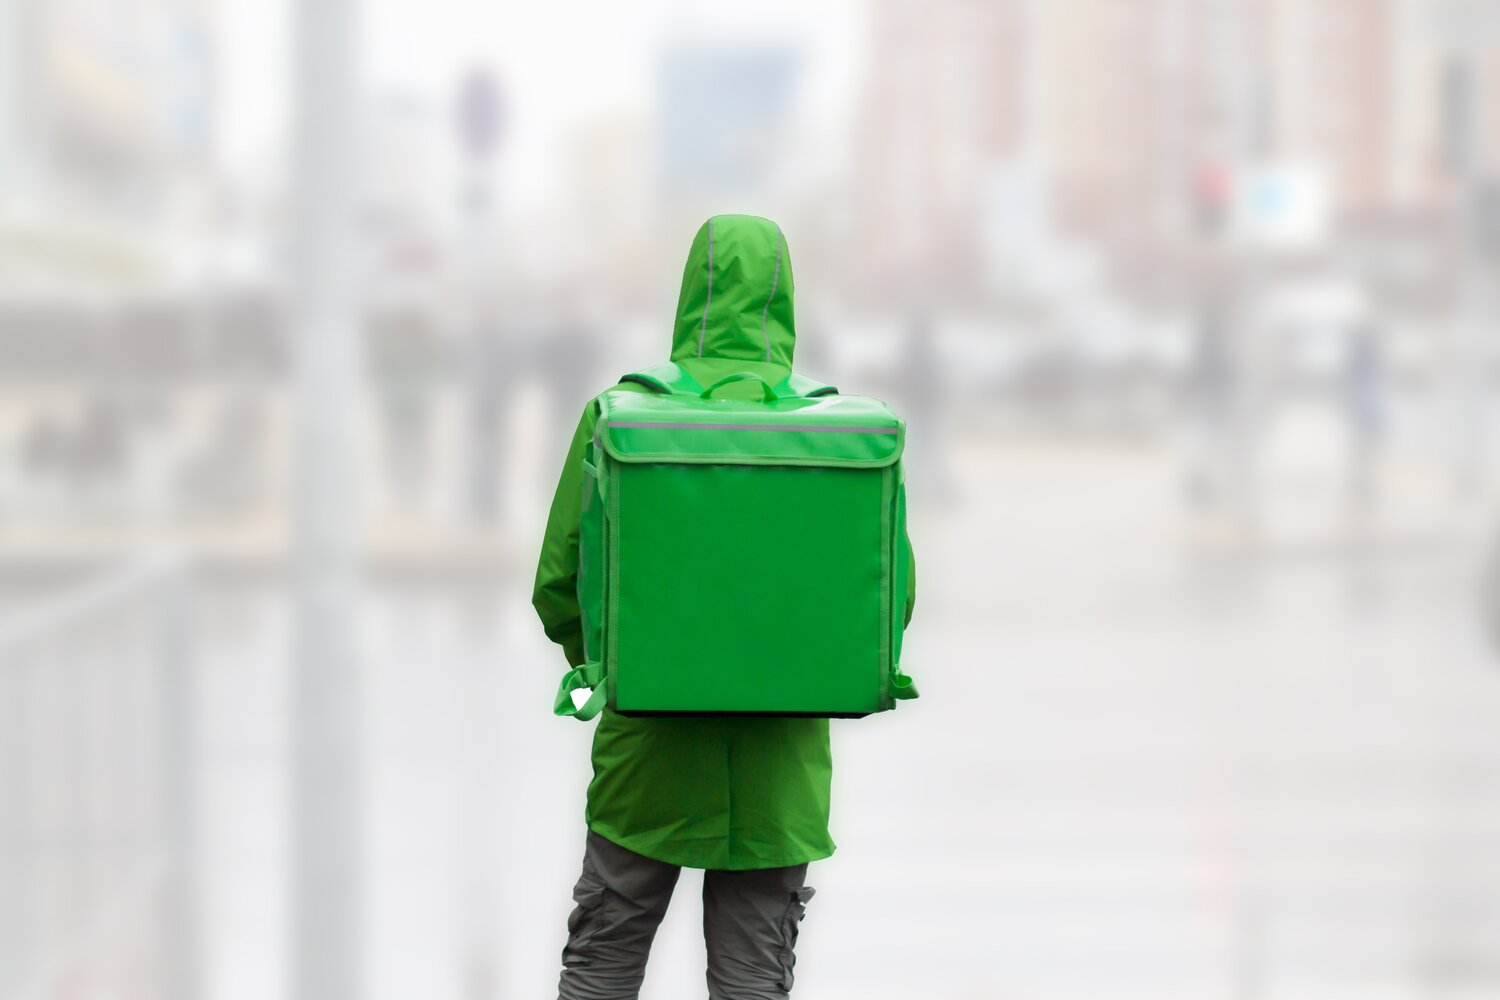 unrecognizable-young-man-courier-in-green-jacket-with-green-backpack-on-a-background-of-blurred_t20_8d9bzj